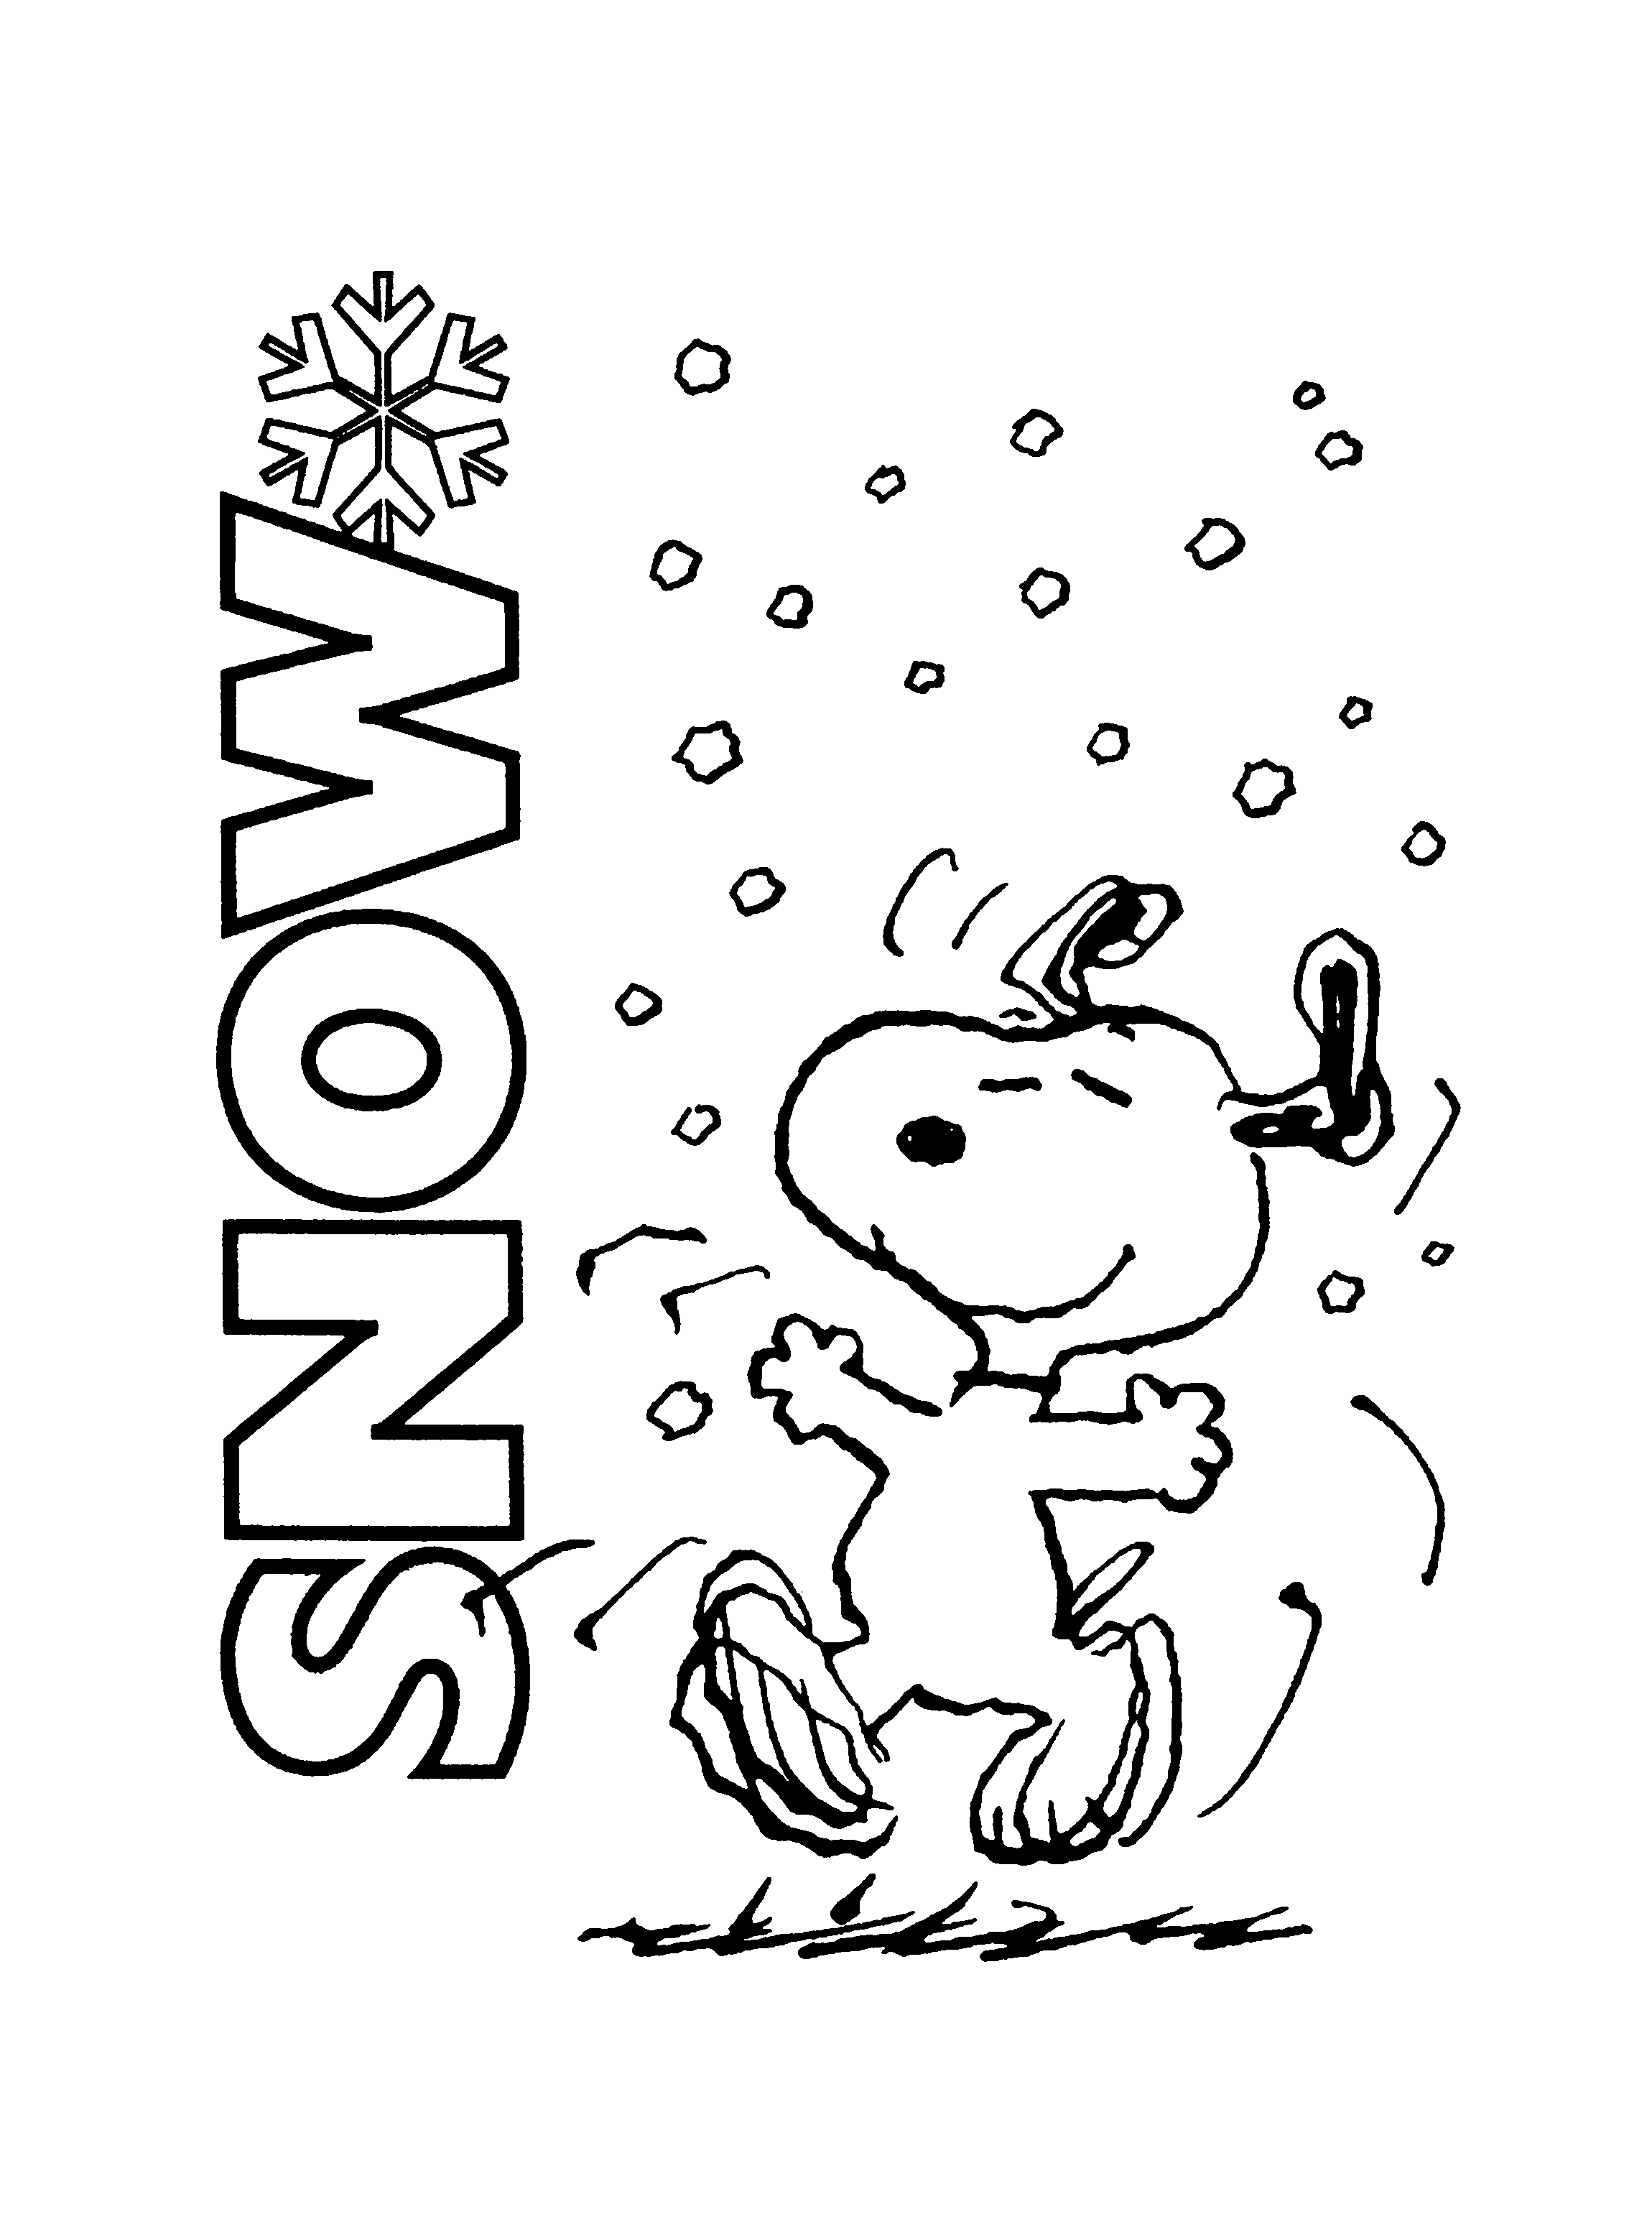 Snoopy Enjoying Snow Coloring Page